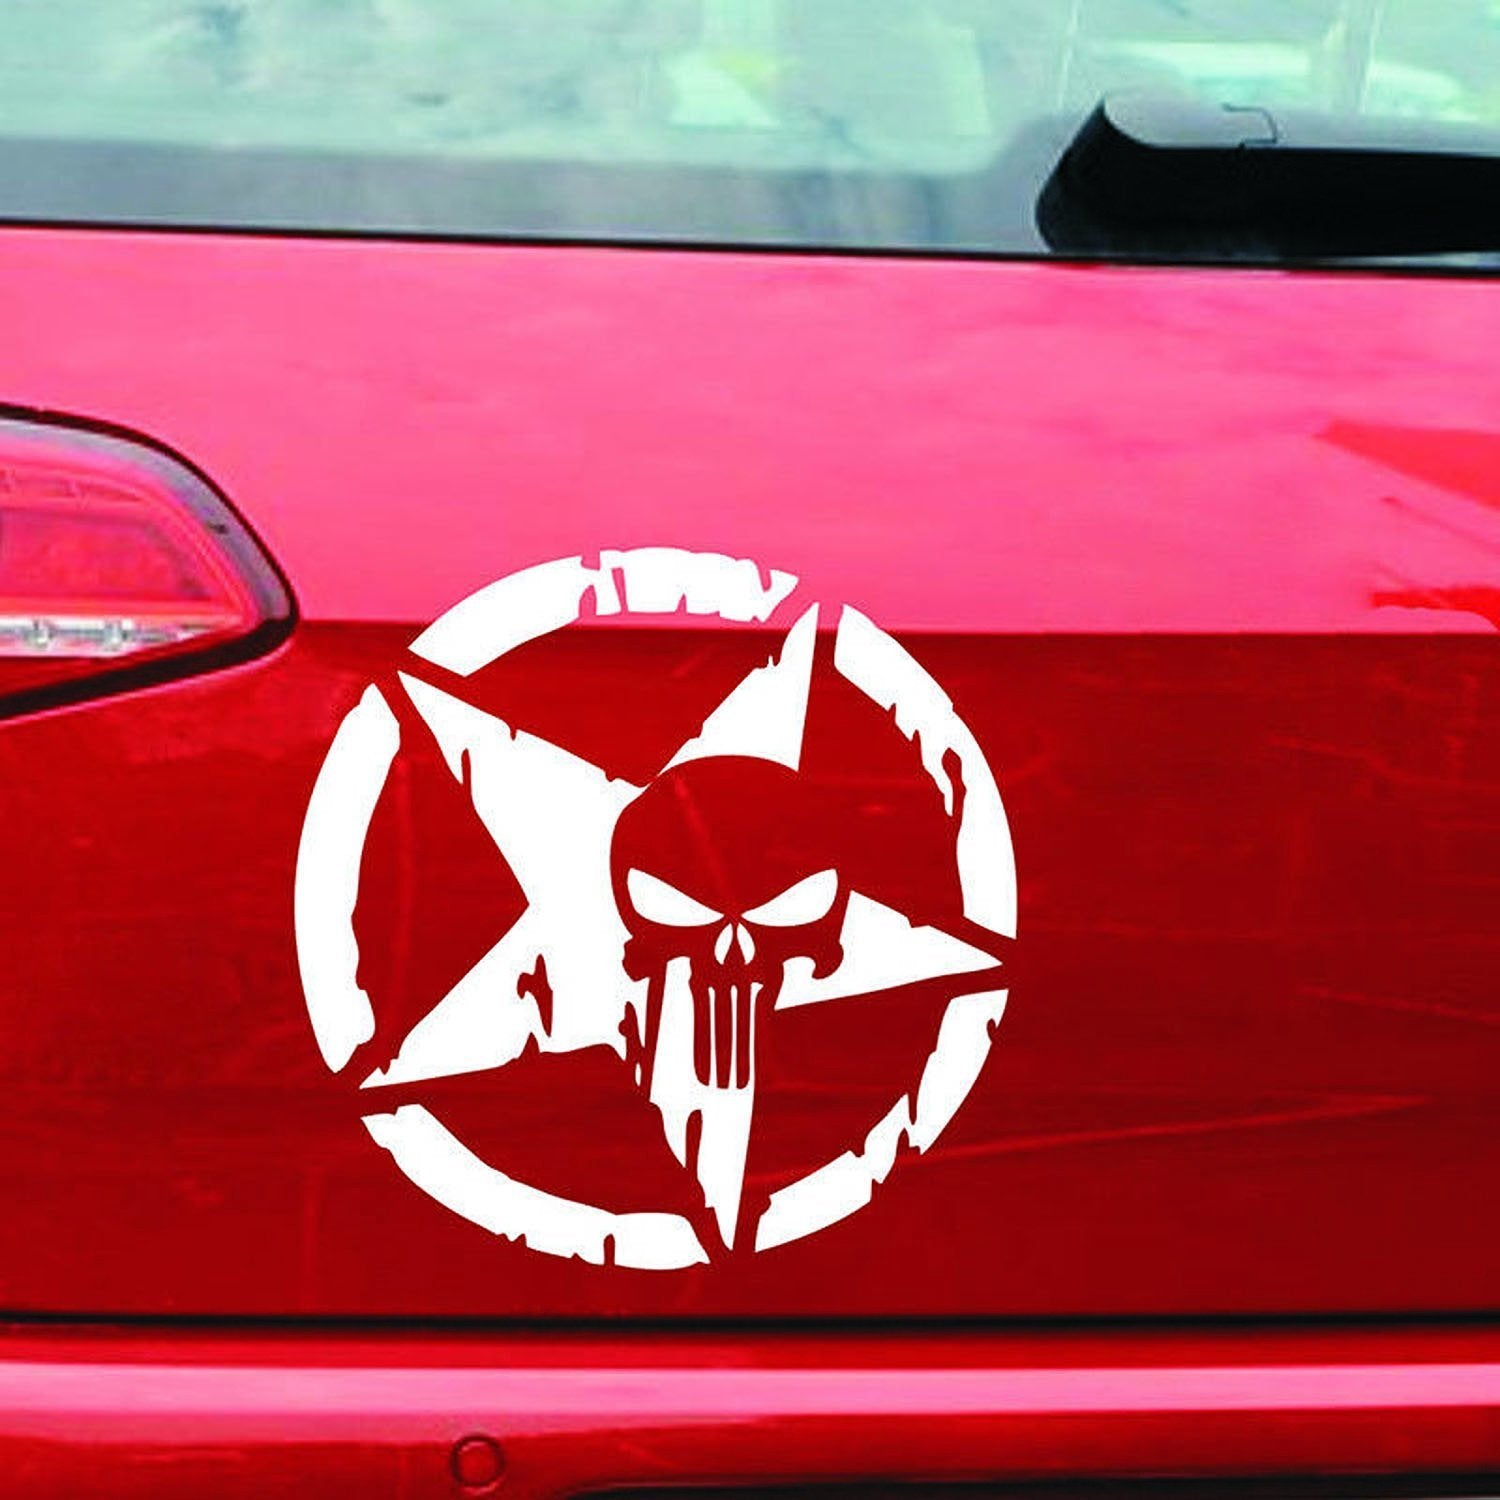 Five-pointed Star & Skull Head Car Sticker Decoration